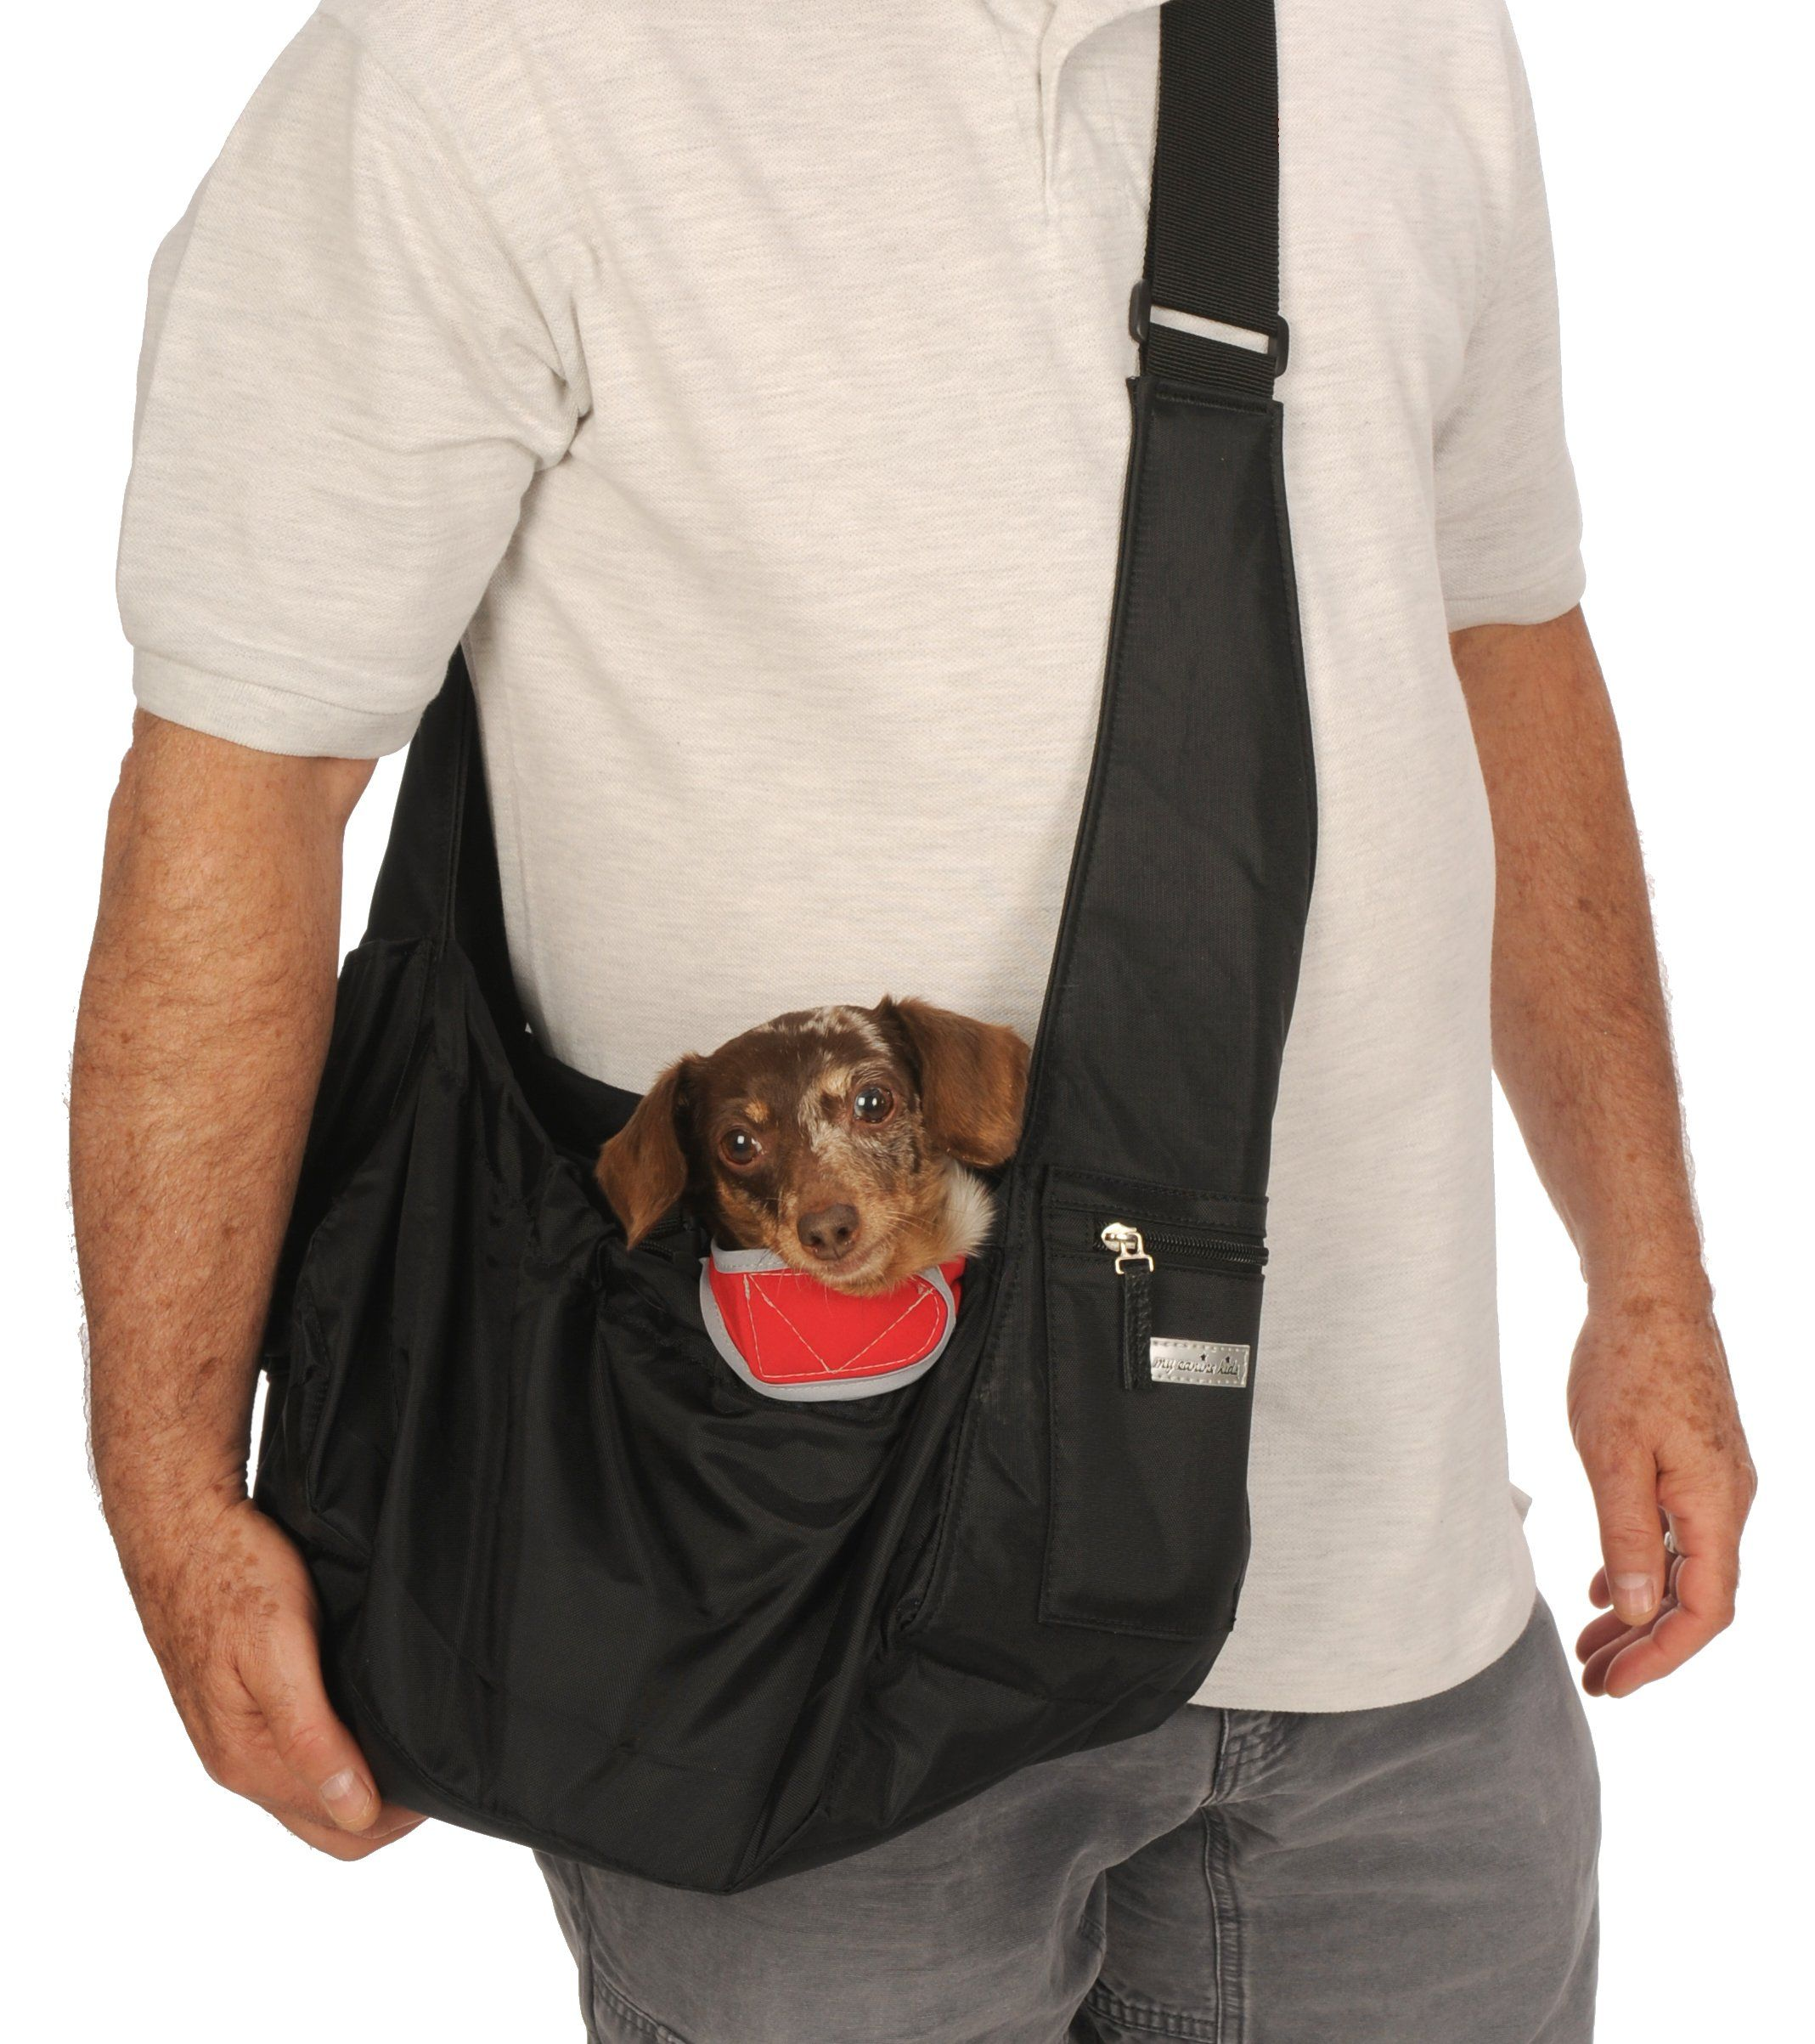 Pin On Dog Carriers Travel